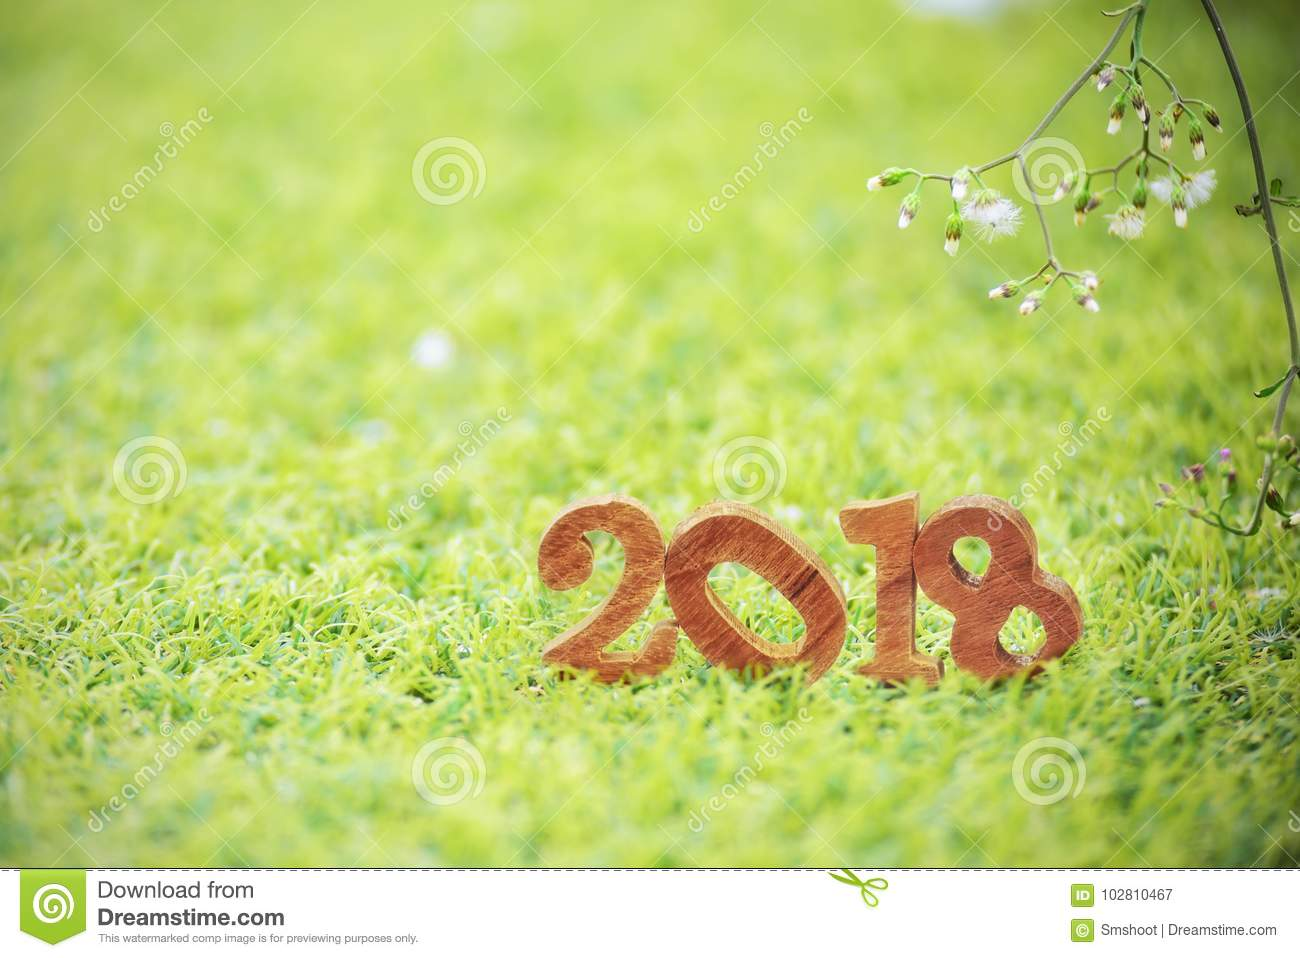 happy new year 2018 nature concept